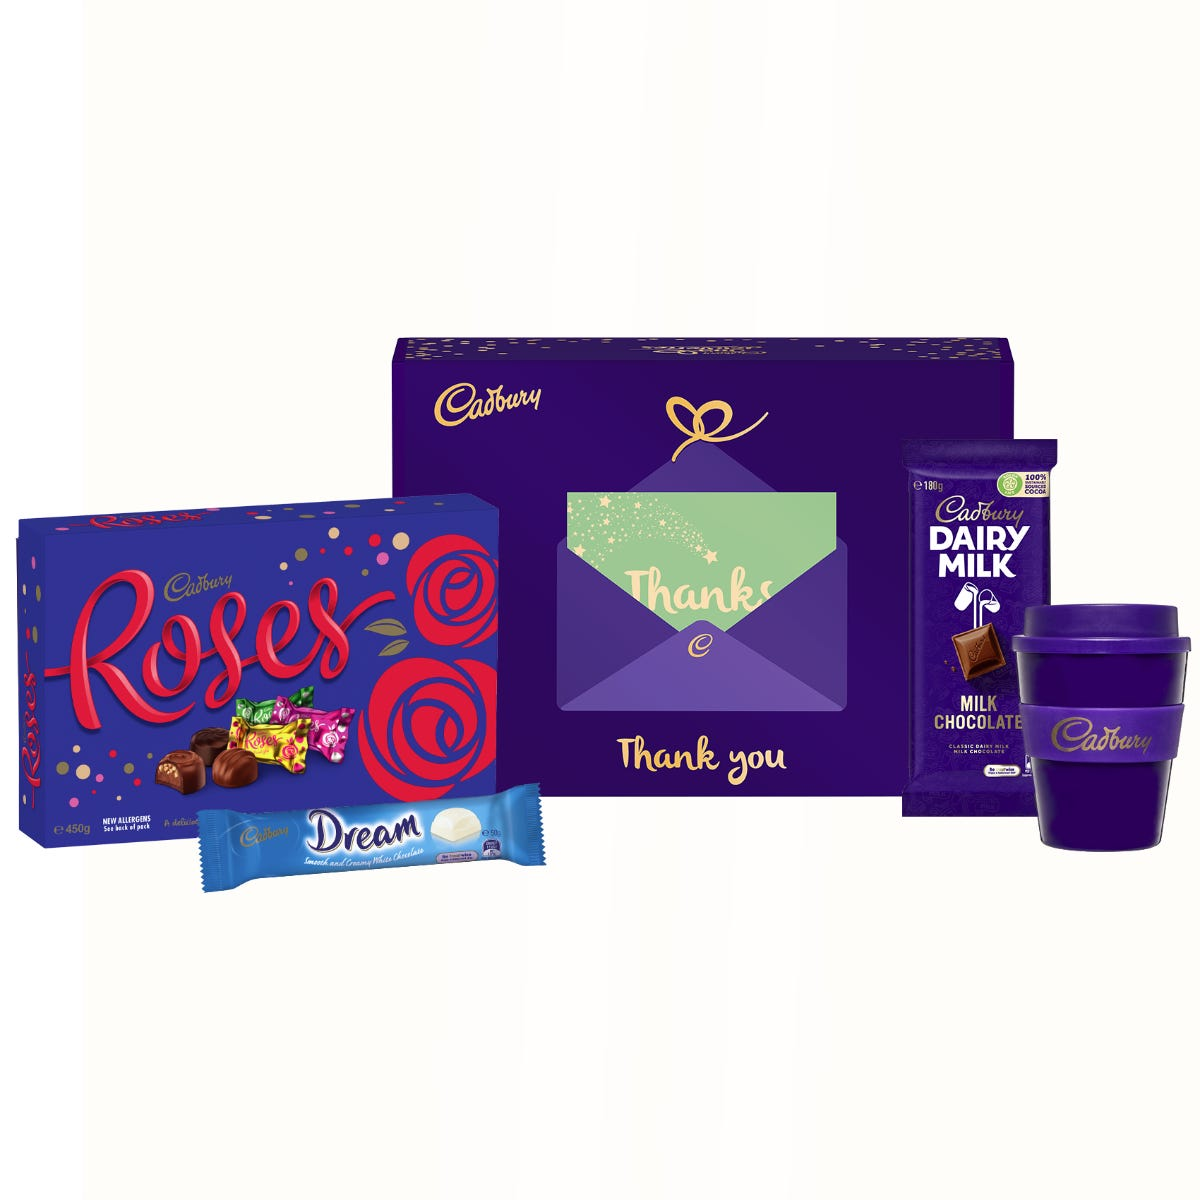 Cadbury Roses gift pack - Thank You